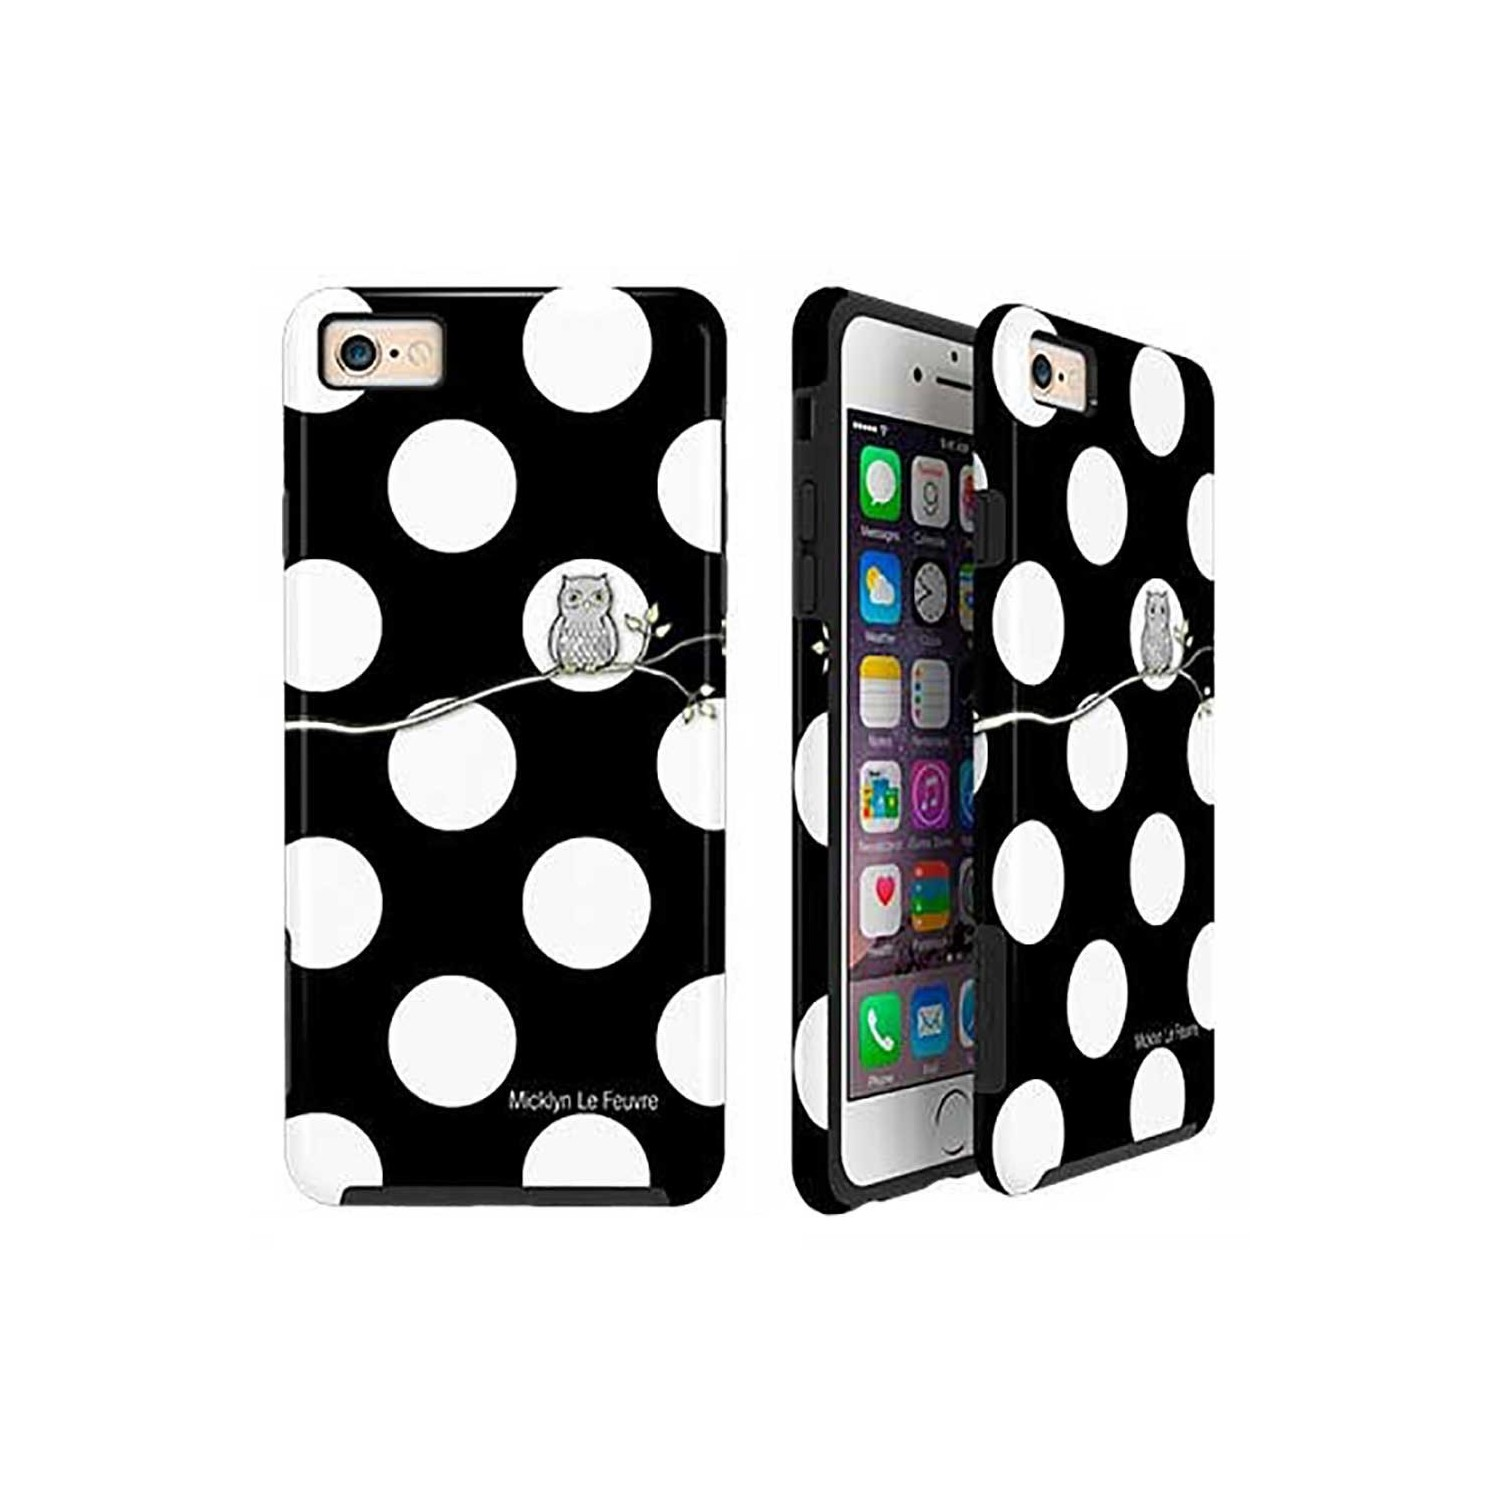 Case -  ArtsCase StrongFit for iPhone 6/6s  Polka Dot Owl